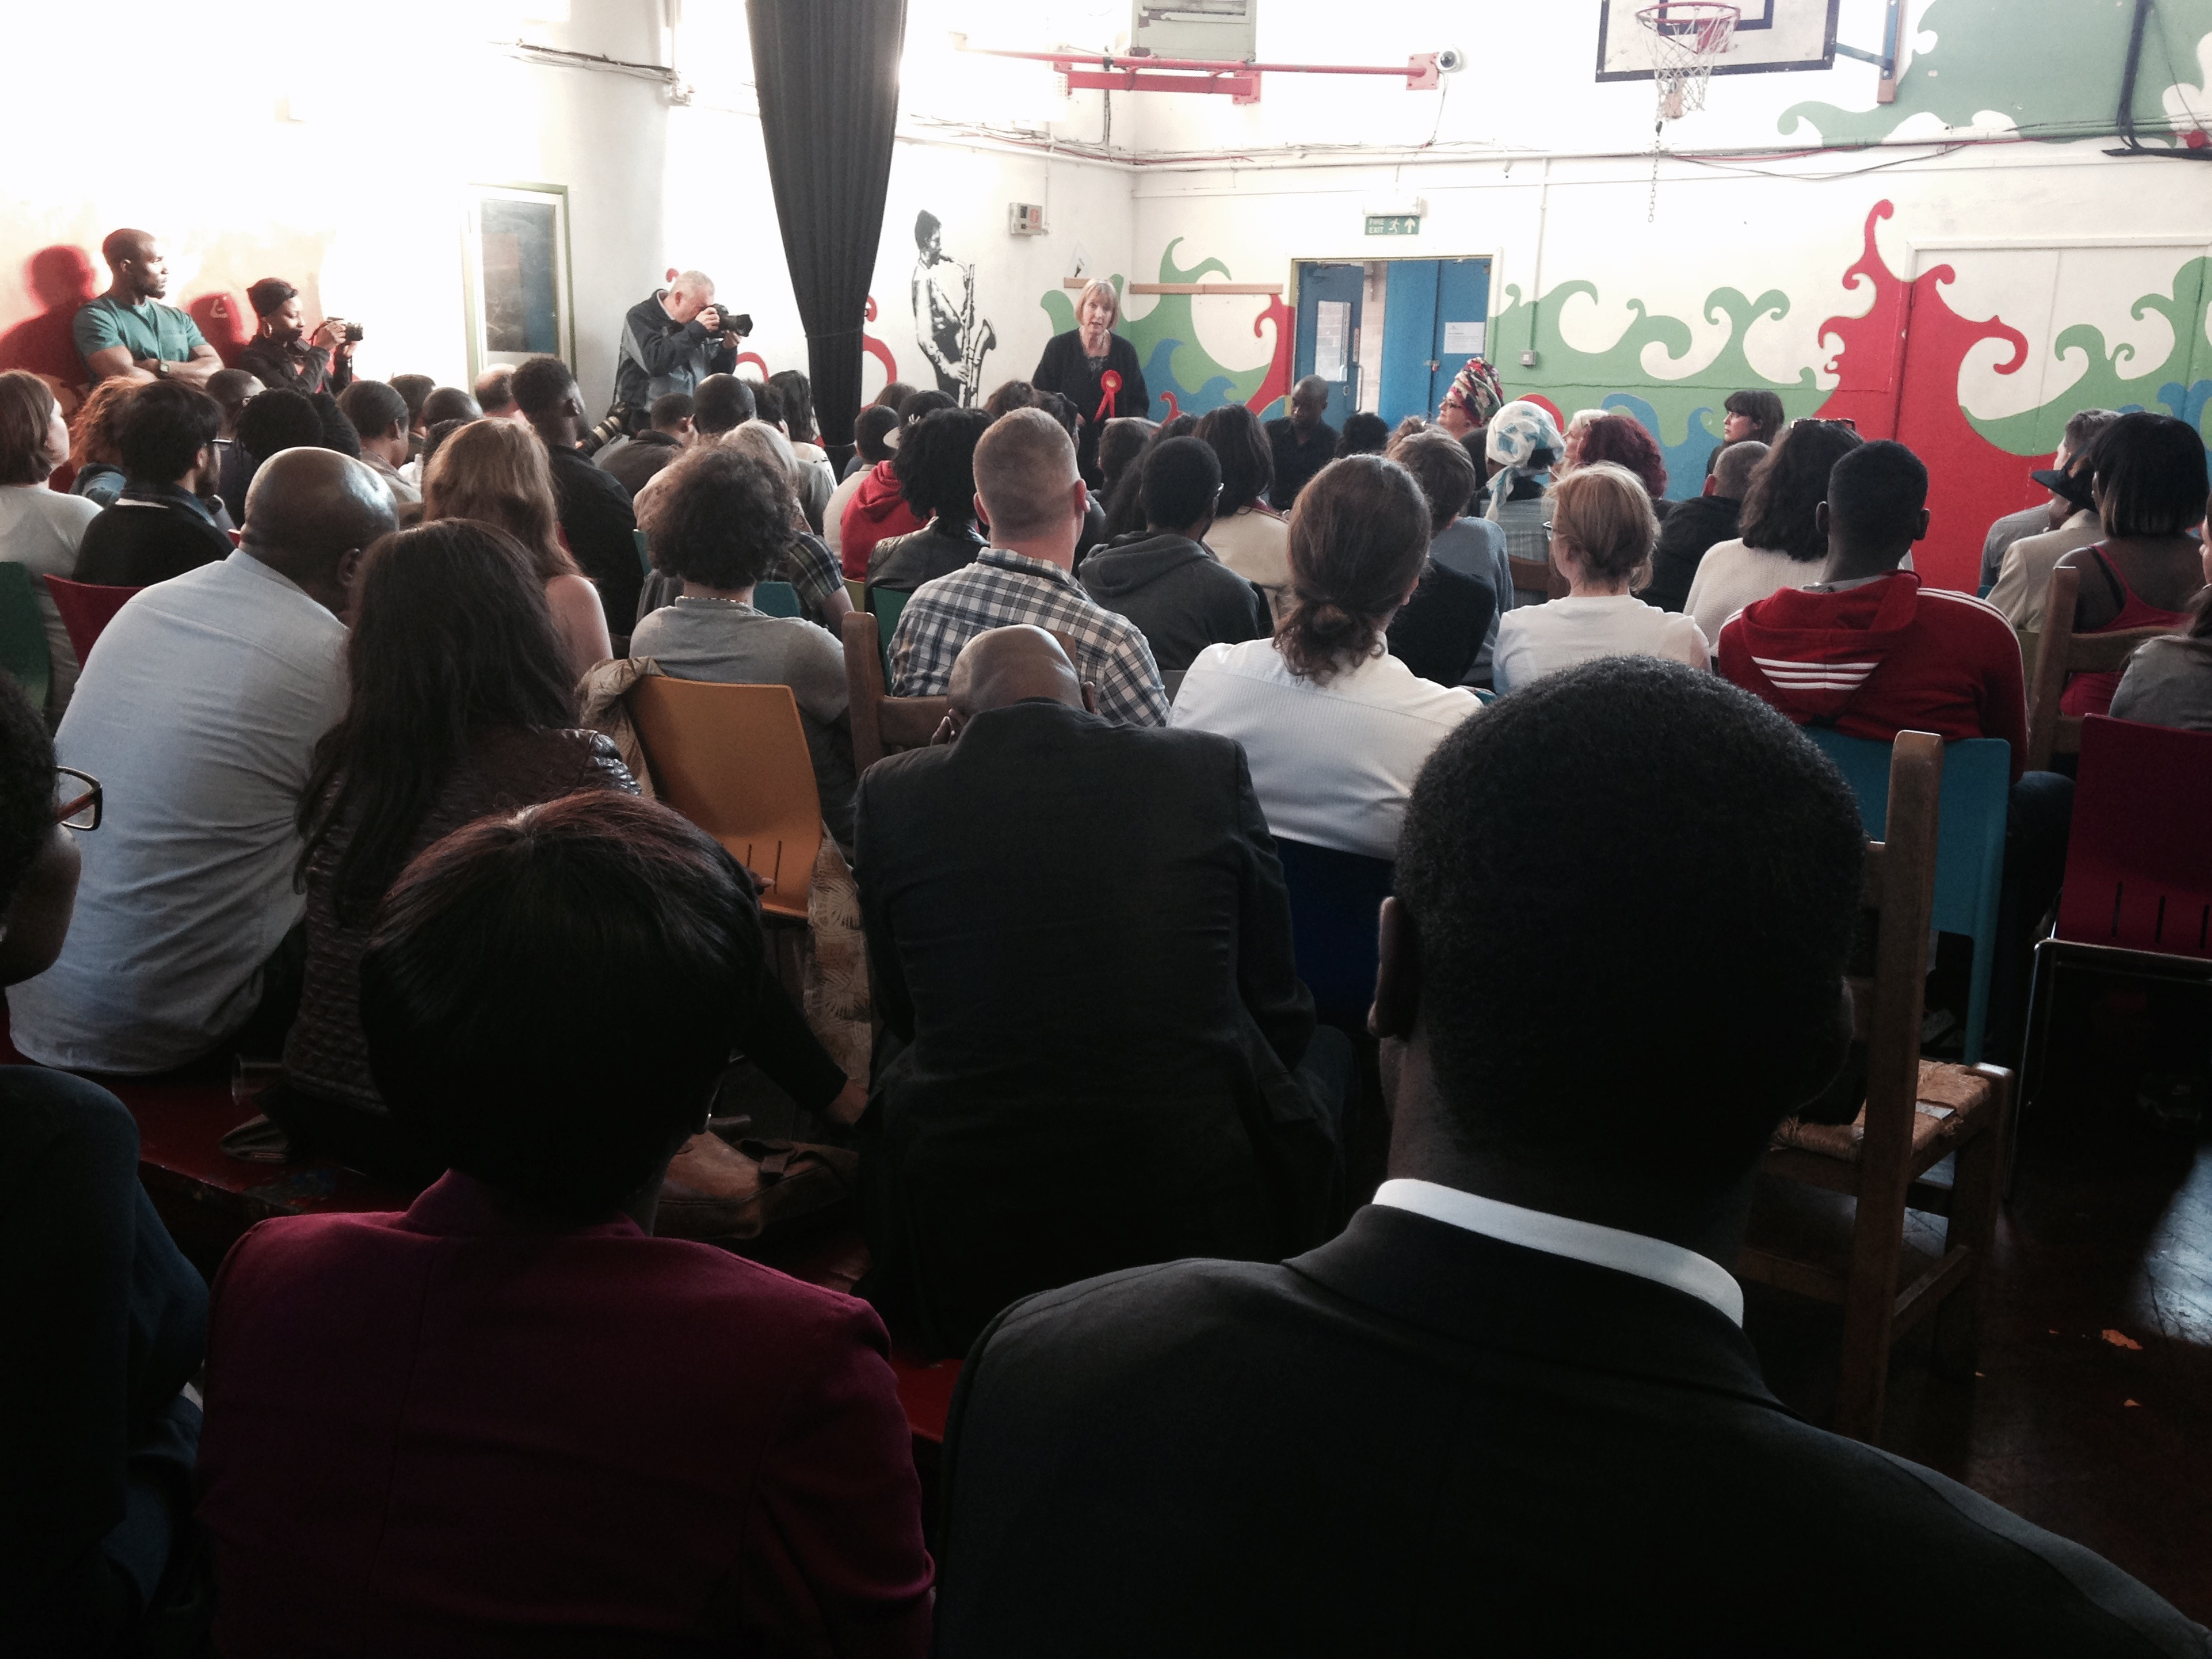 Kids_Company_hustings_14.4.15.jpg